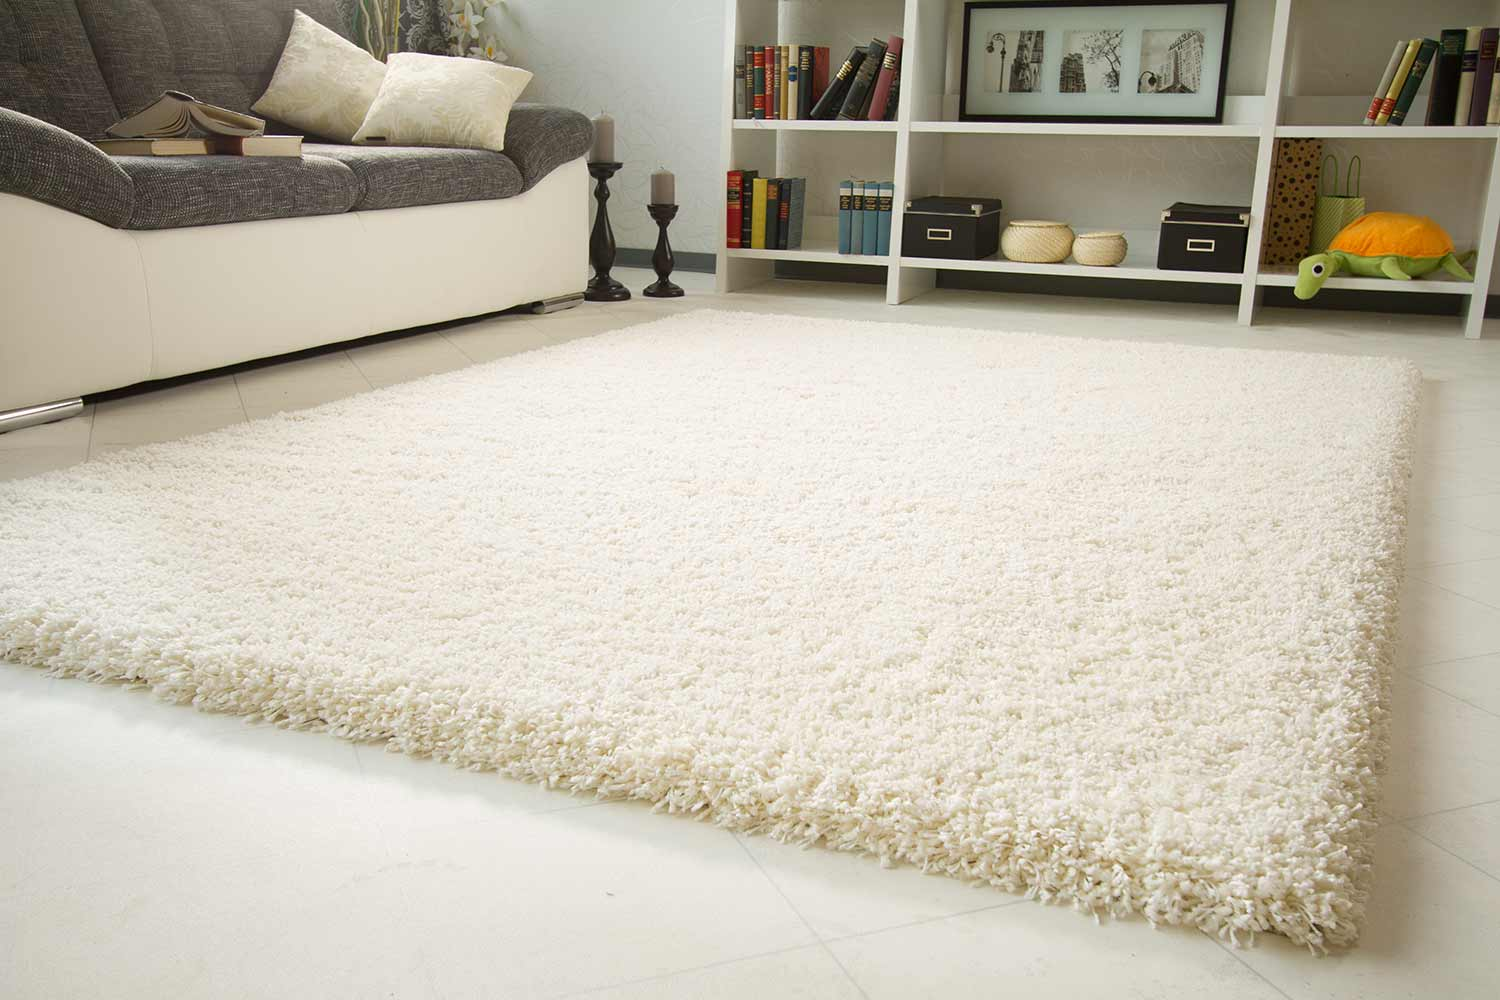 Flokati teppich  Hochflor Teppich Tom Tailor - Soft | global-carpet